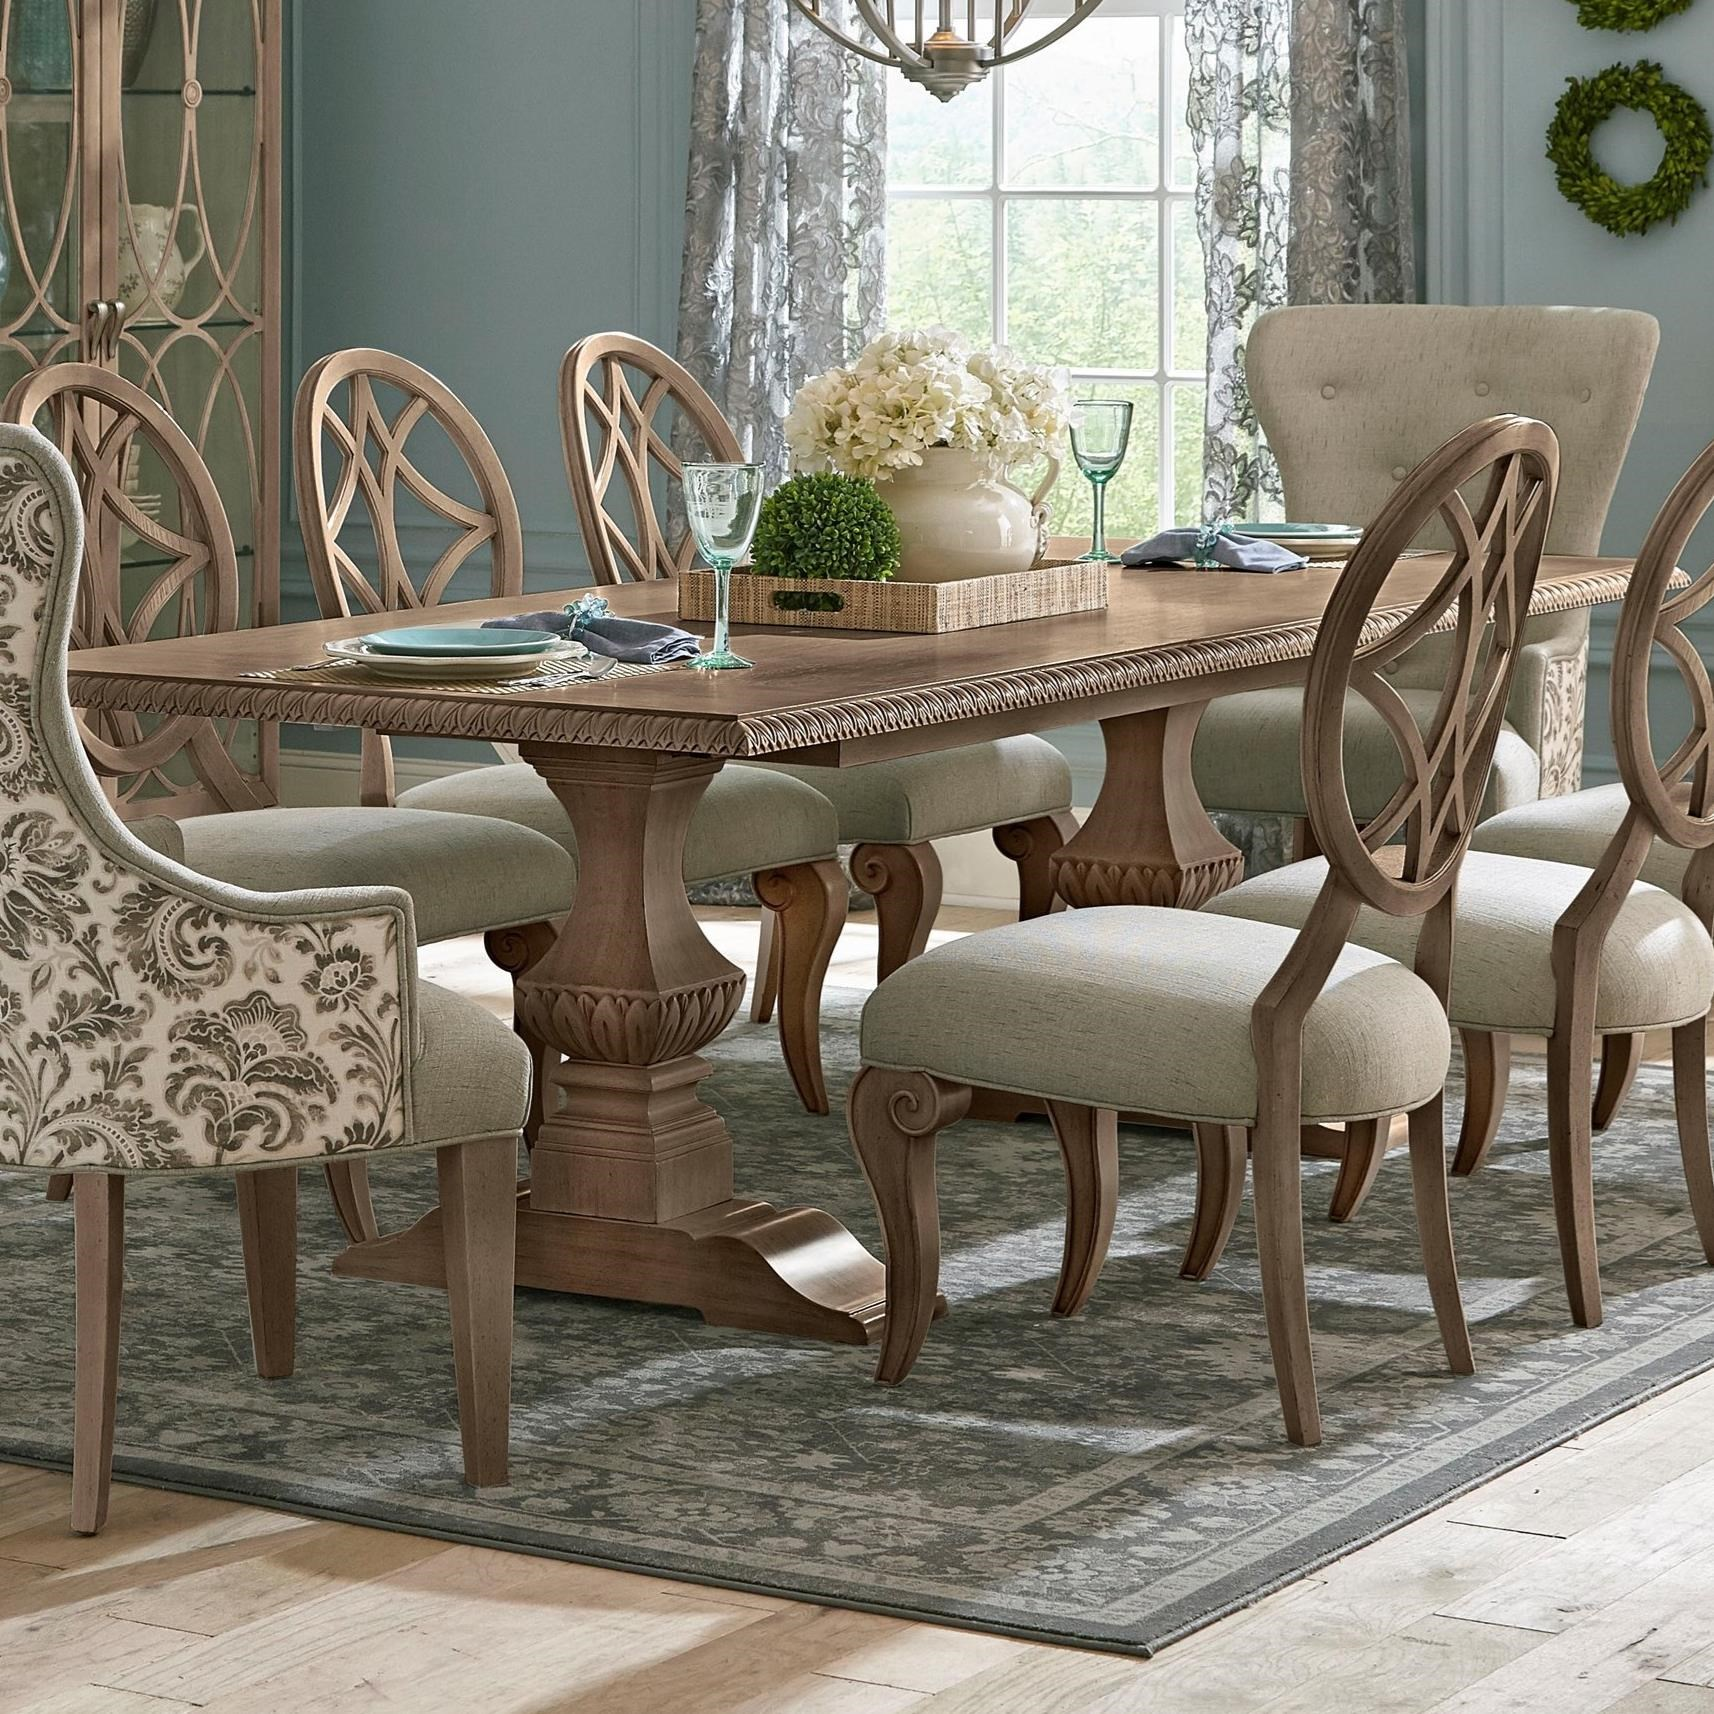 Trisha Yearwood Home Collection By Klaussner Jasper County